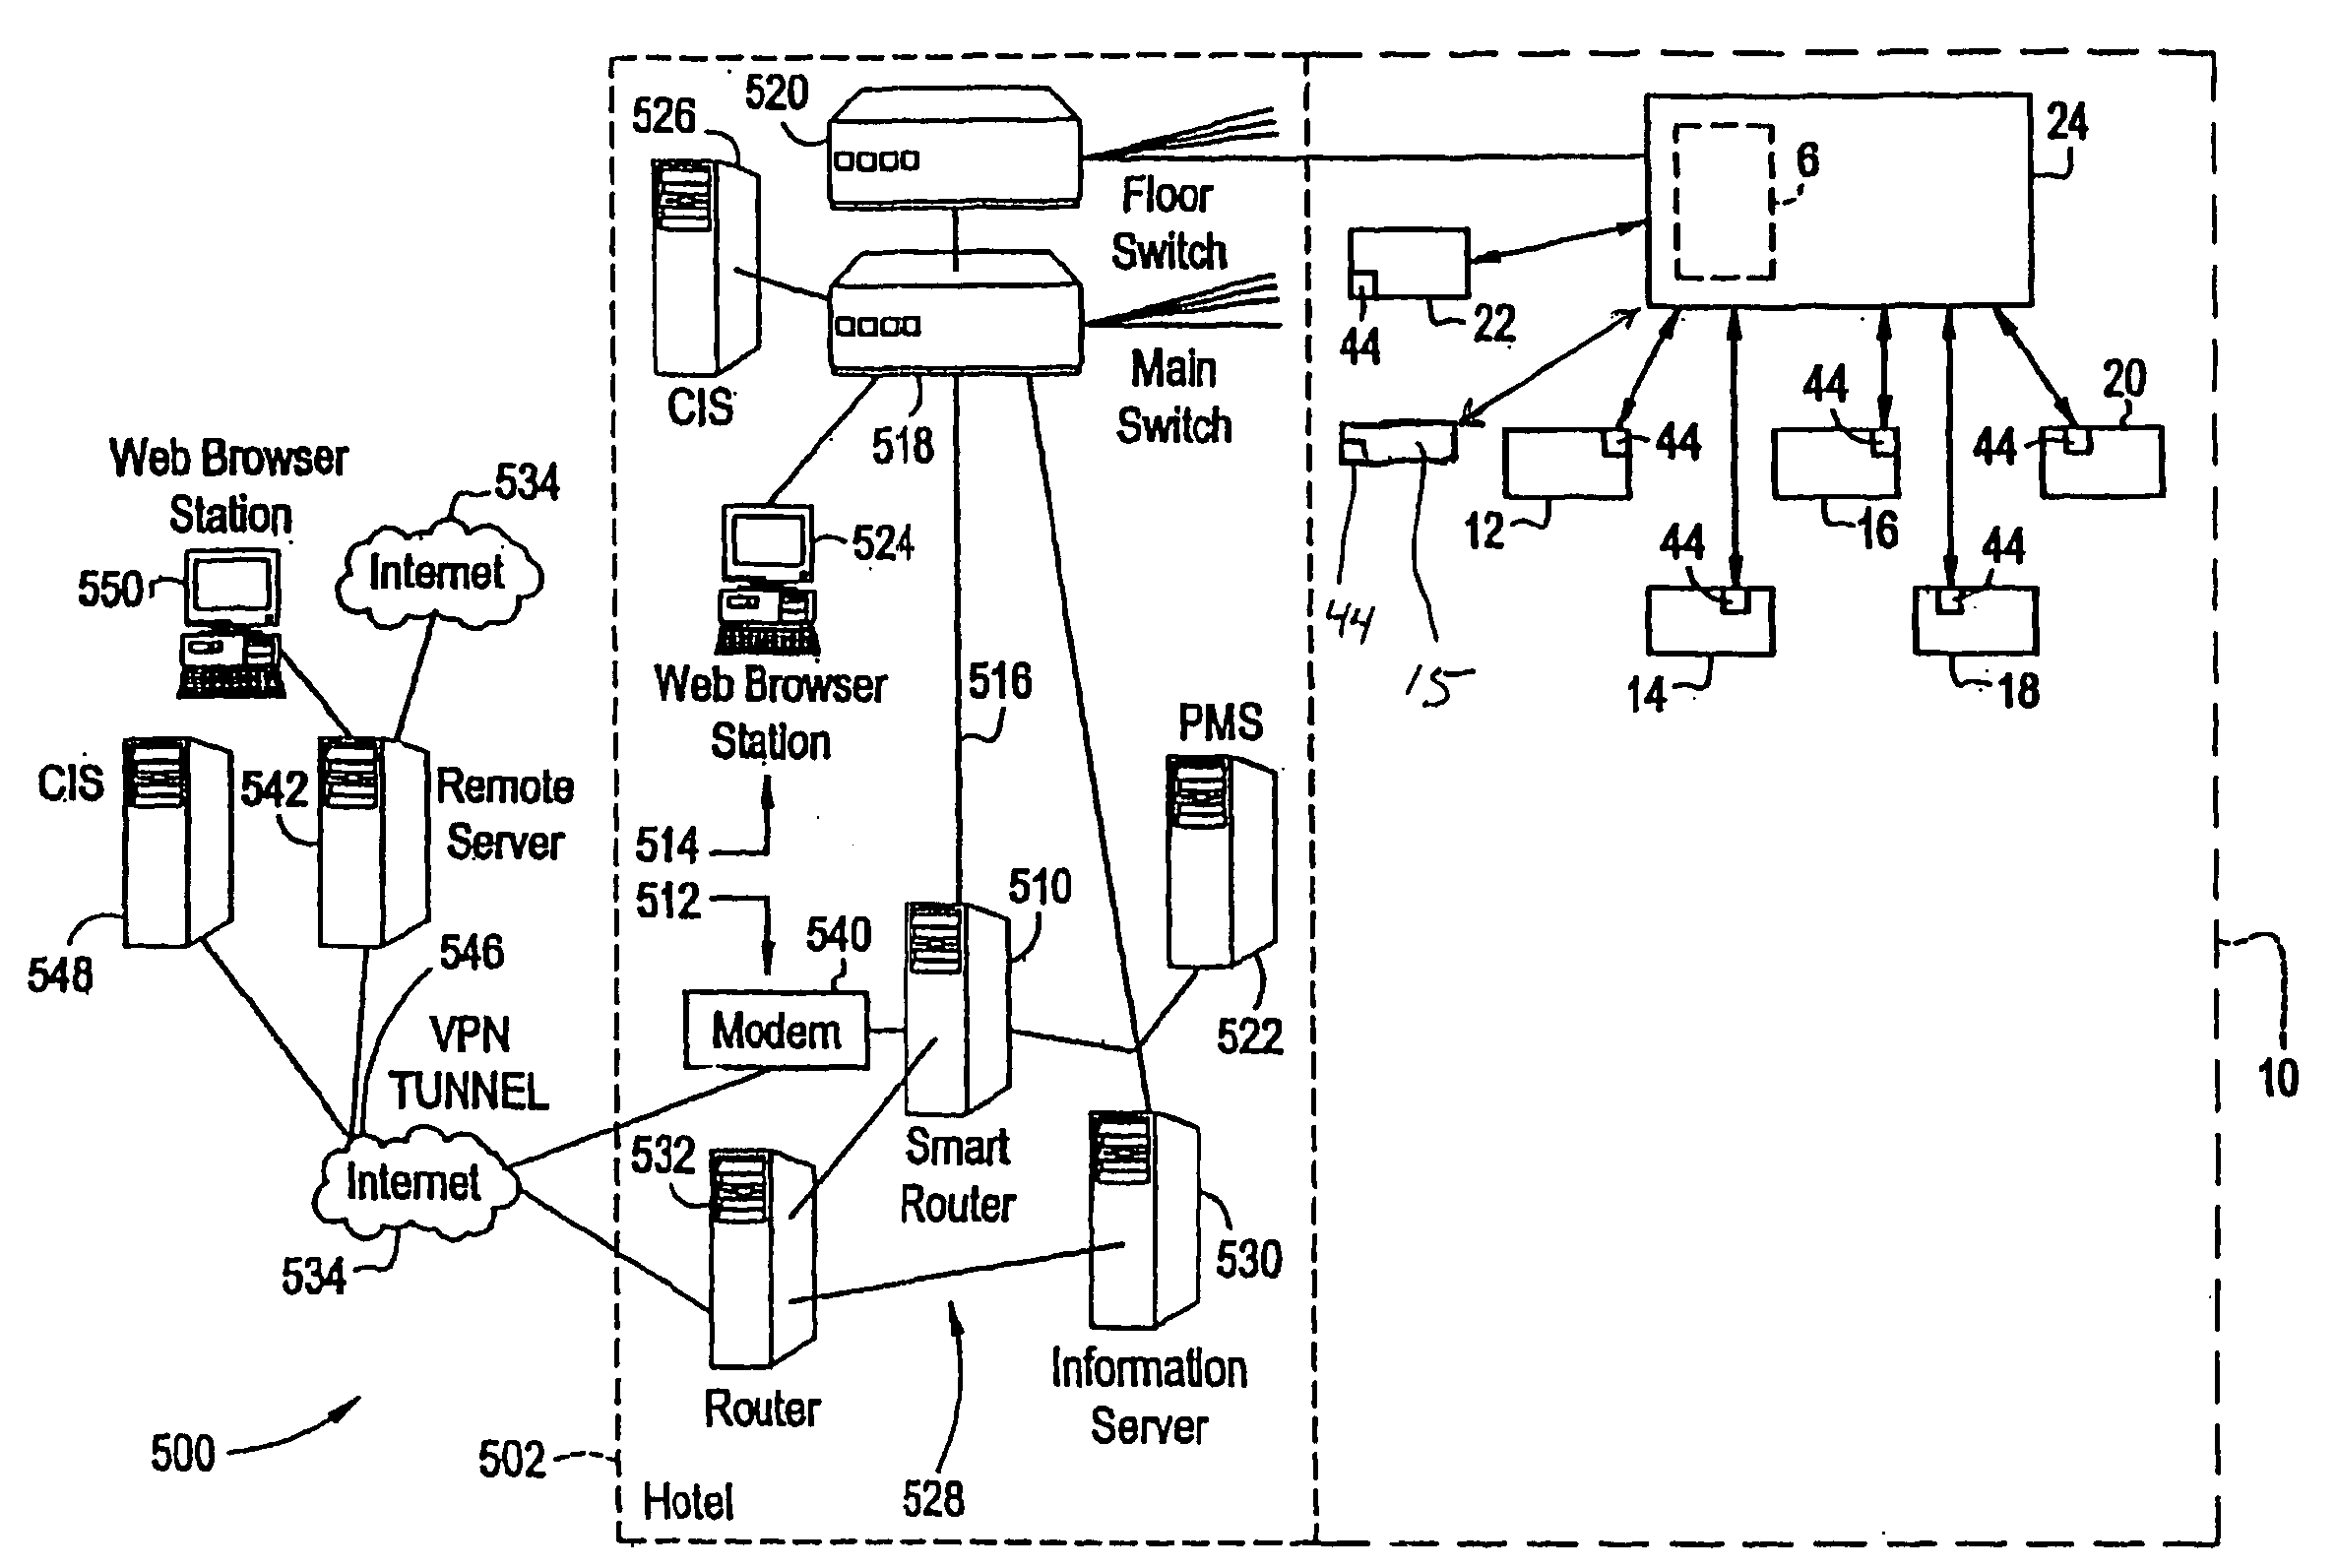 inncom e528 wiring diagram room get free image about wiring diagram